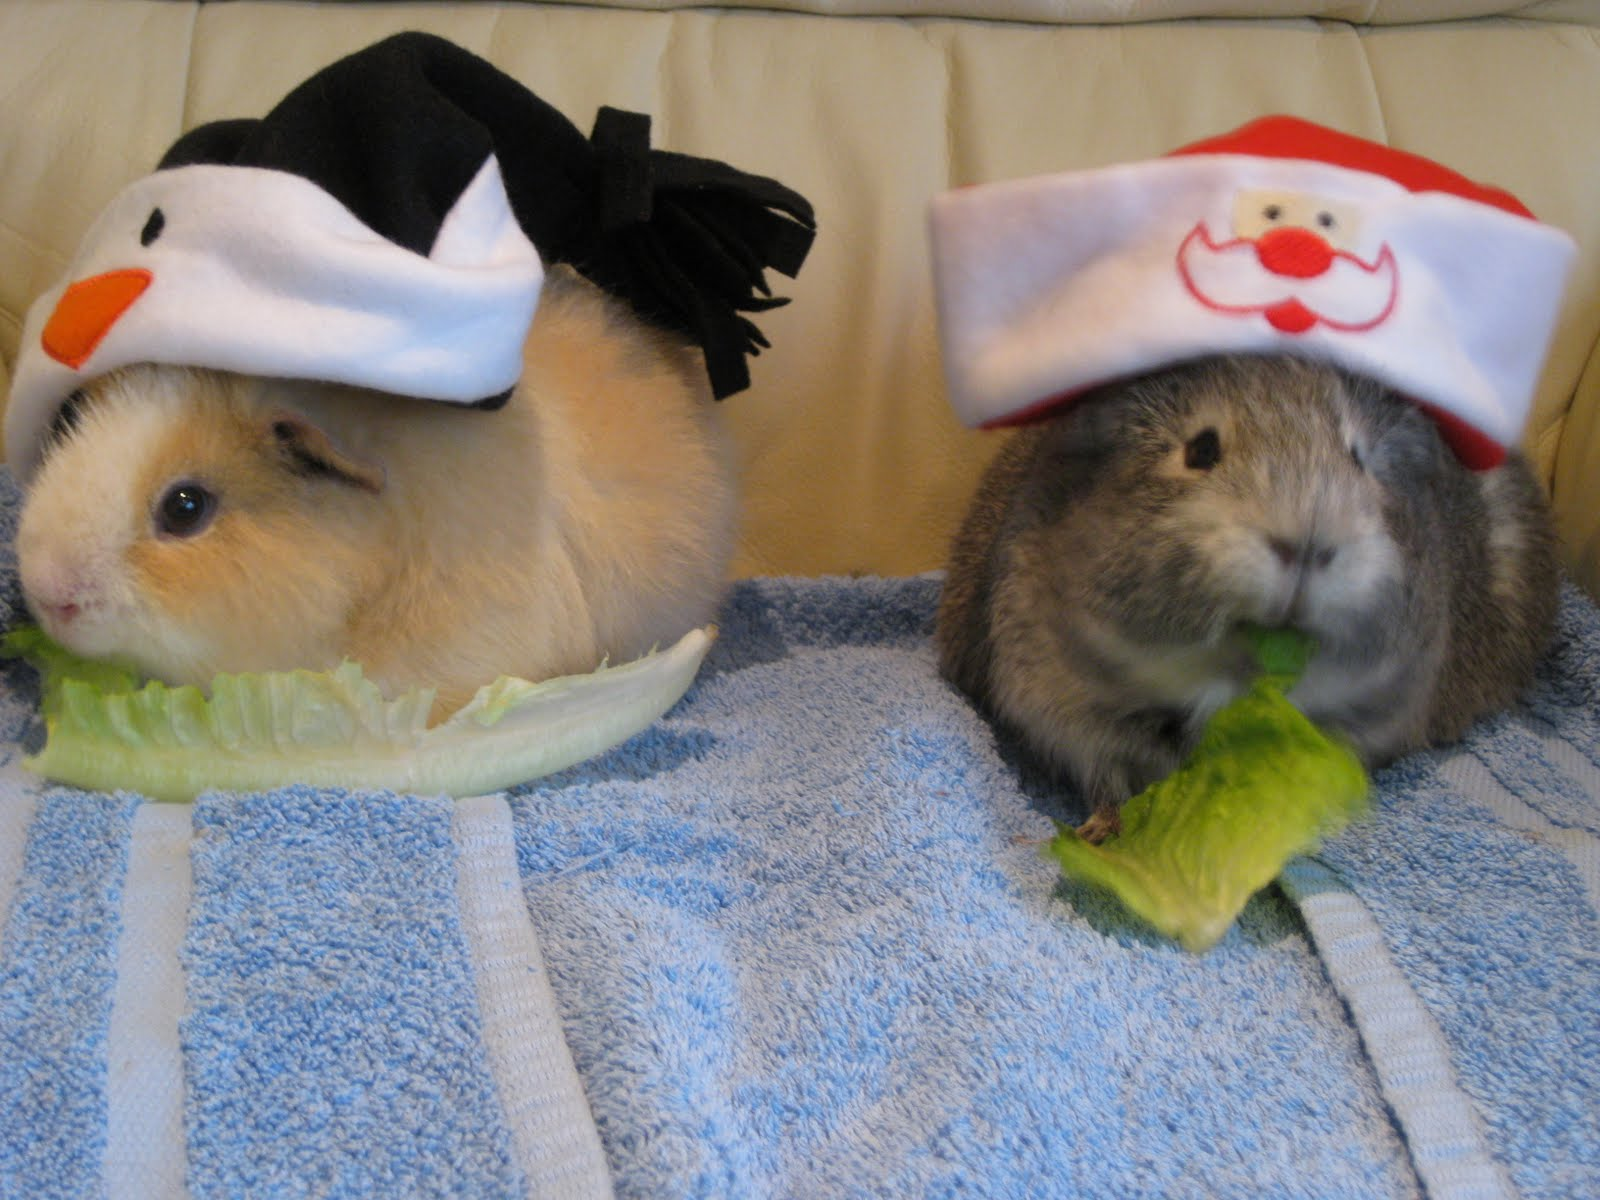 Undercover guinea pigs merry pigmas from agents ghost and iron hamster - Hamster agent secret ...